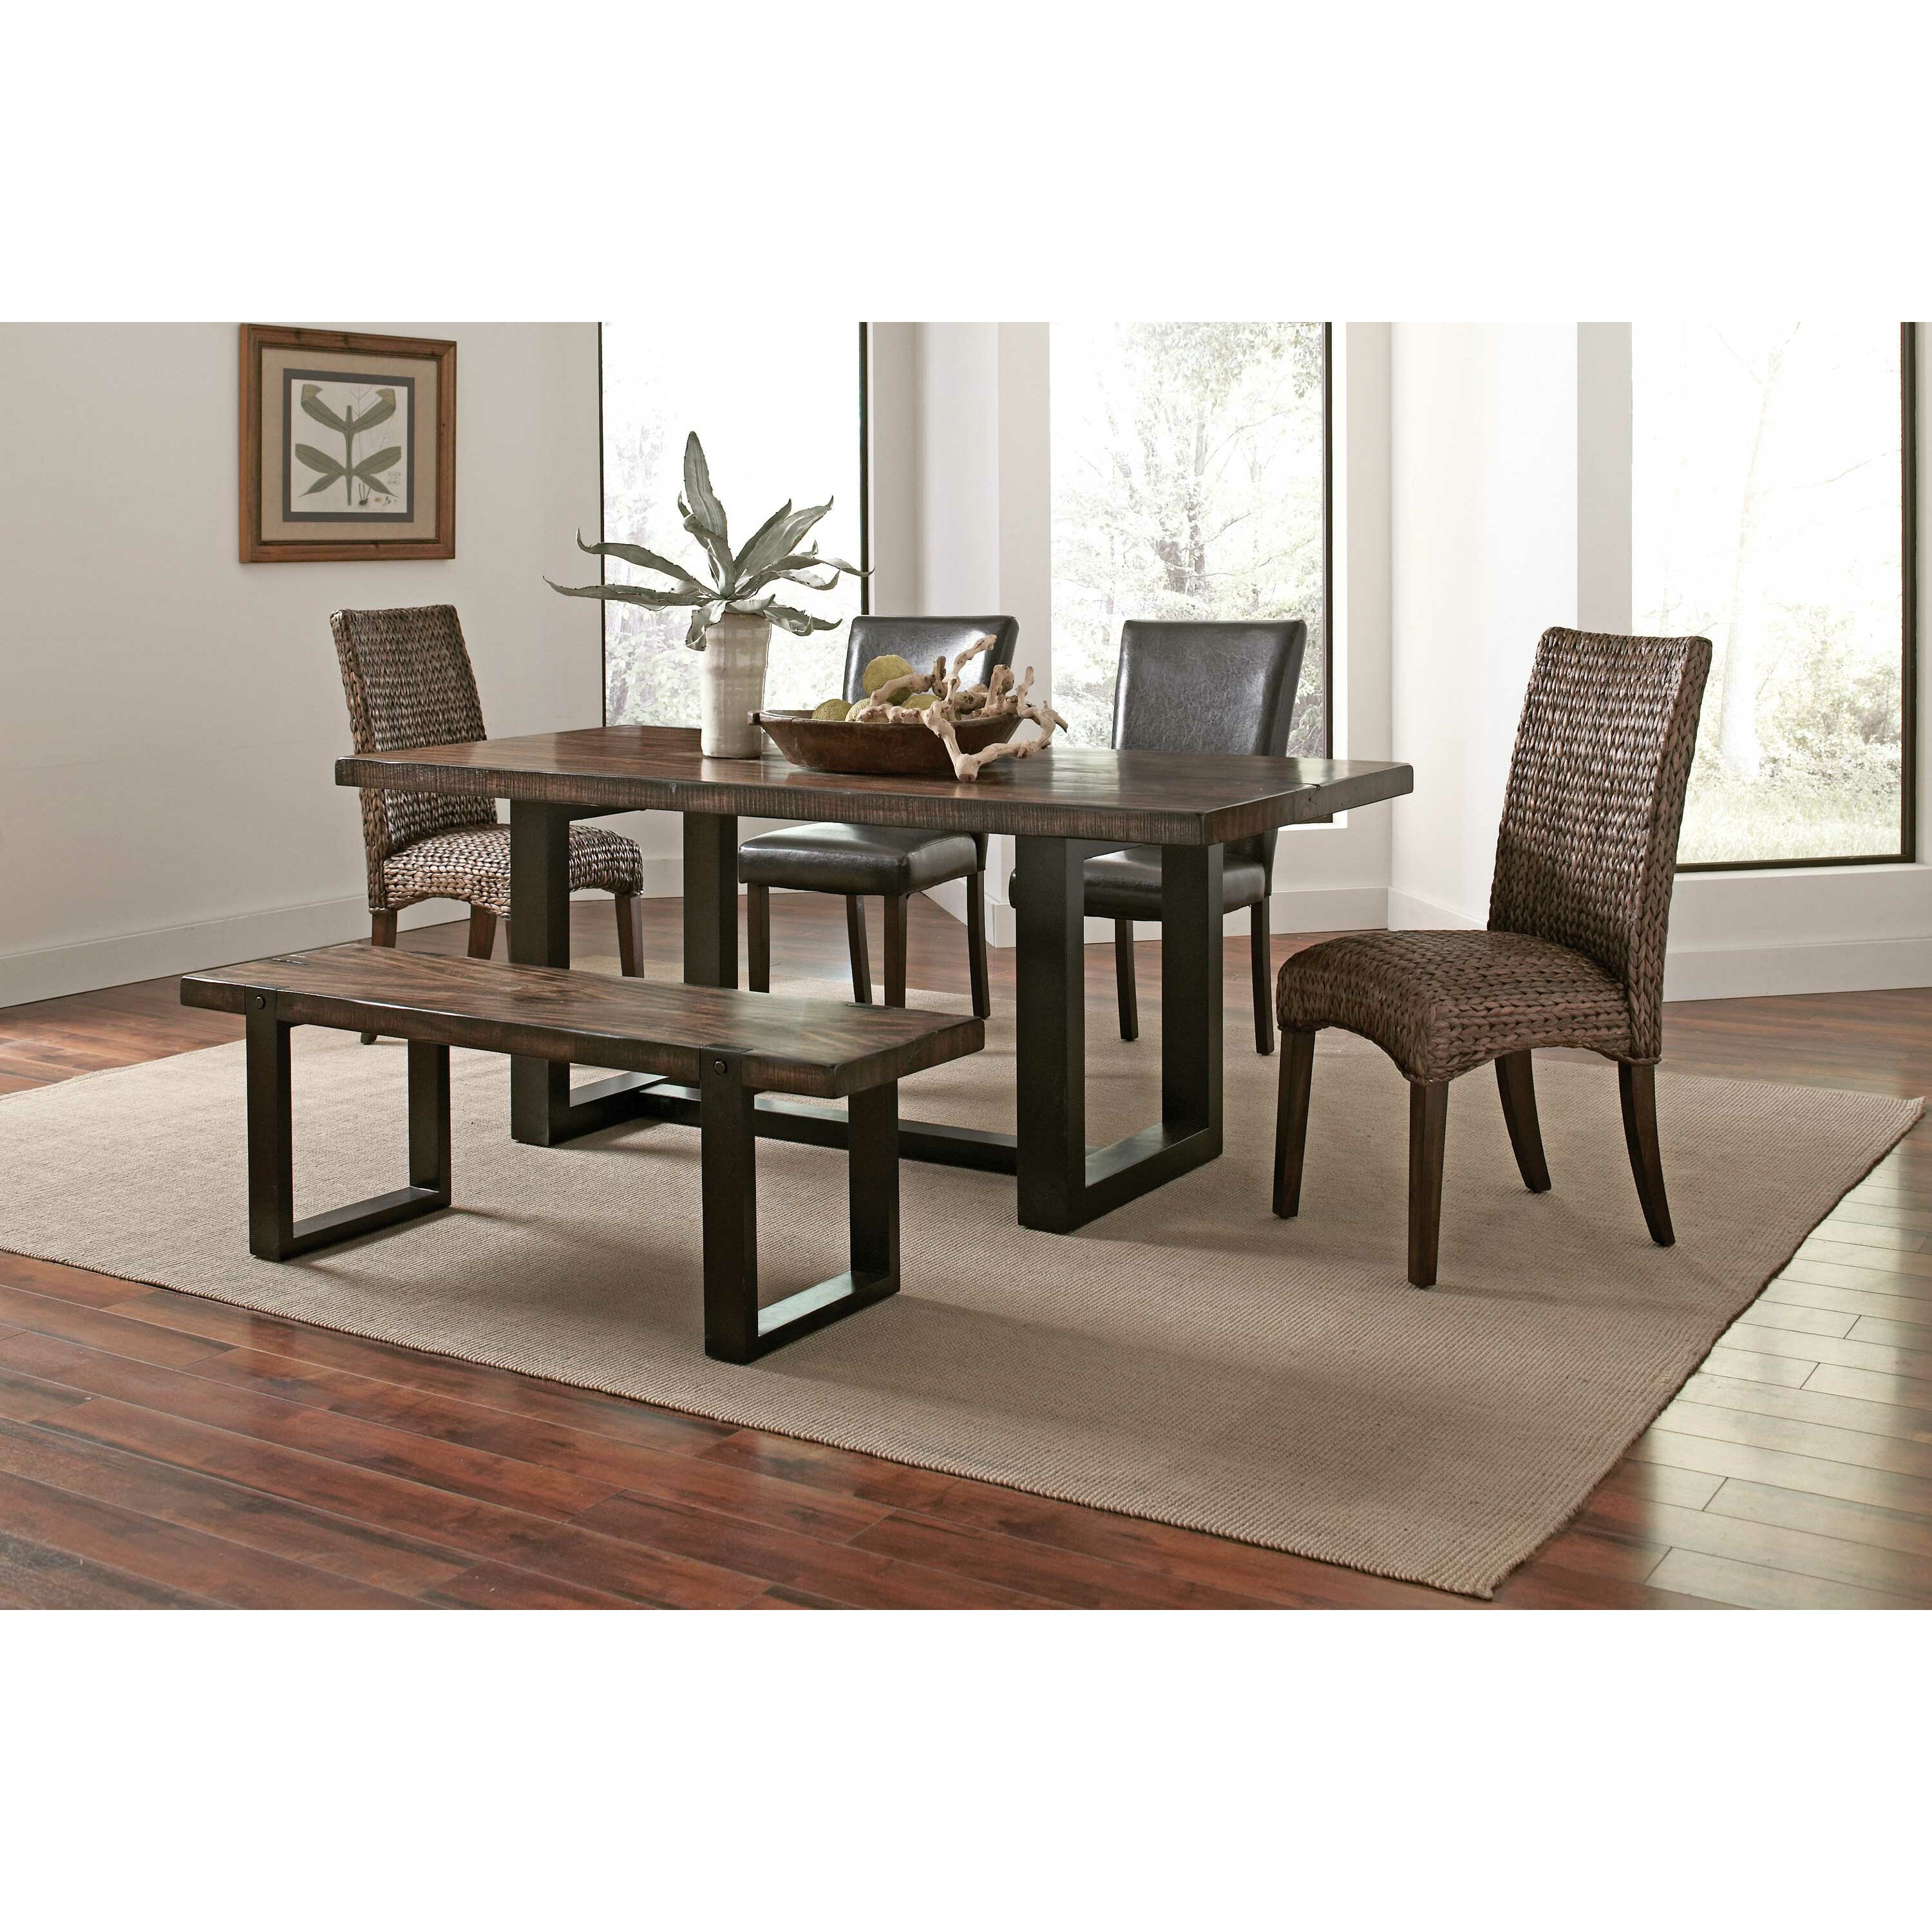 Wildon home dining table reviews for Wildon home dining